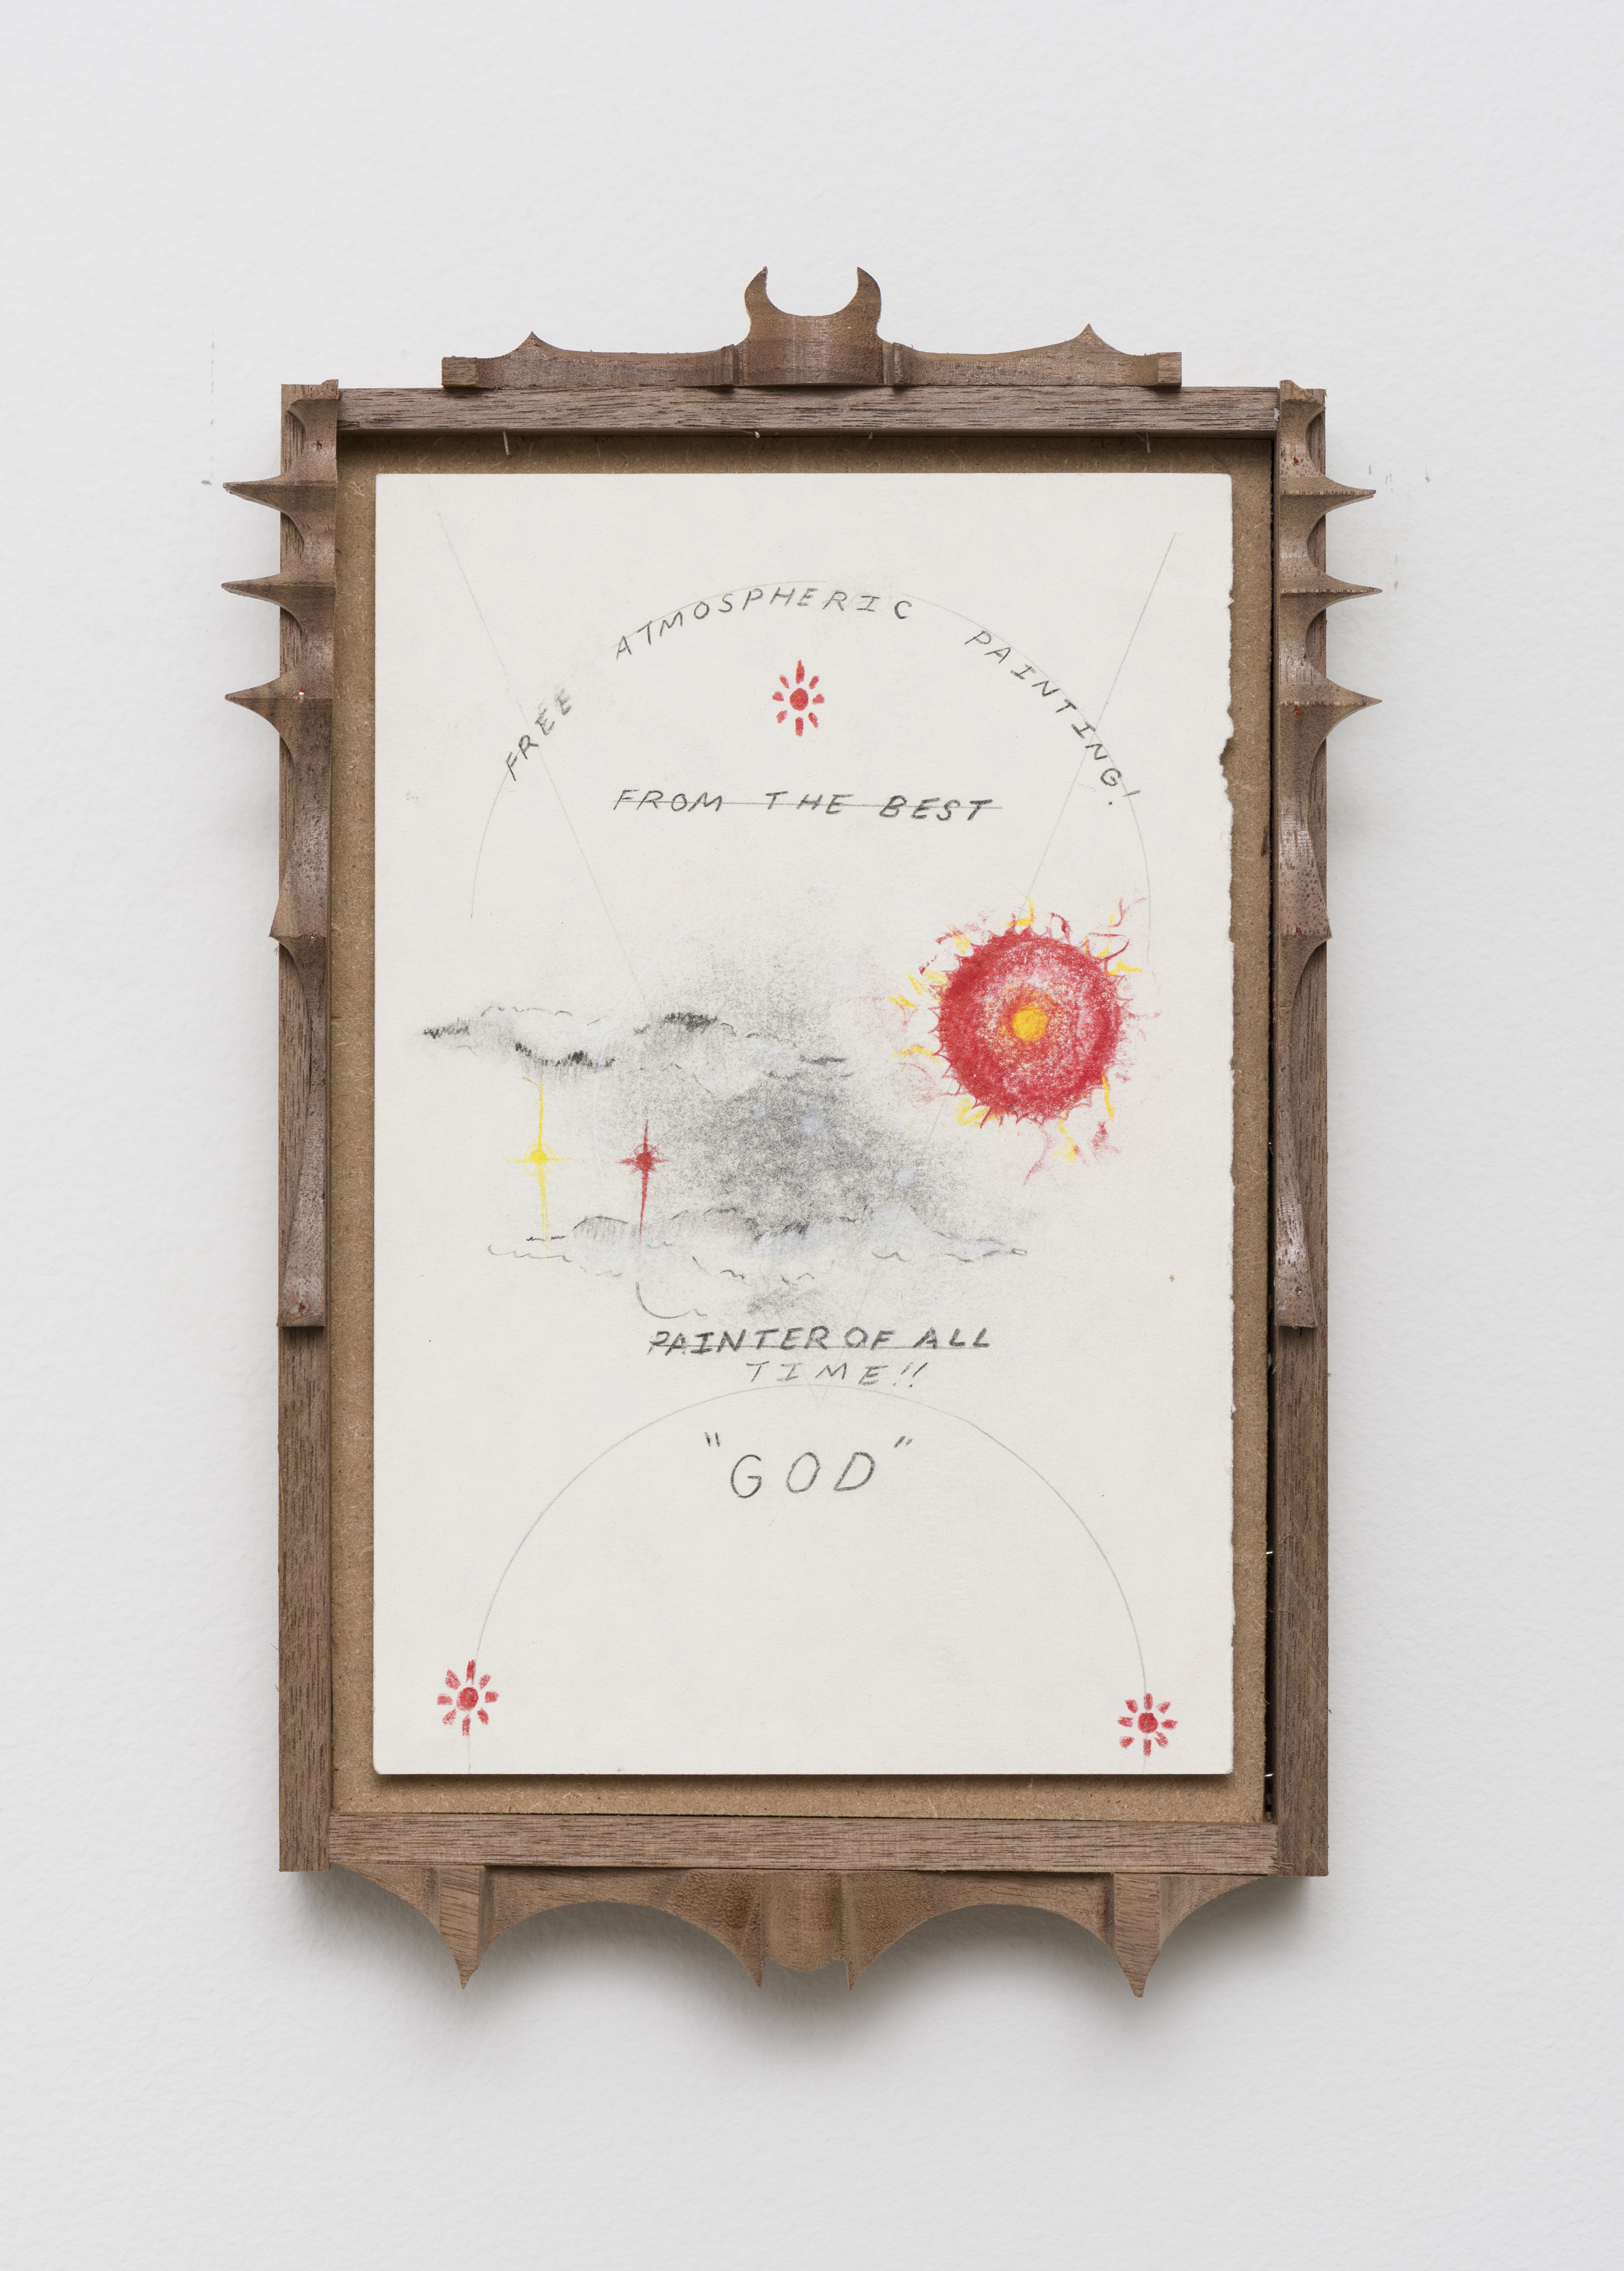 Harry Gould Harvey IV  Look Up! Free Atmospheric Painting   2019 Pencil on paper, carved walnut frame 11 x 6.75 in